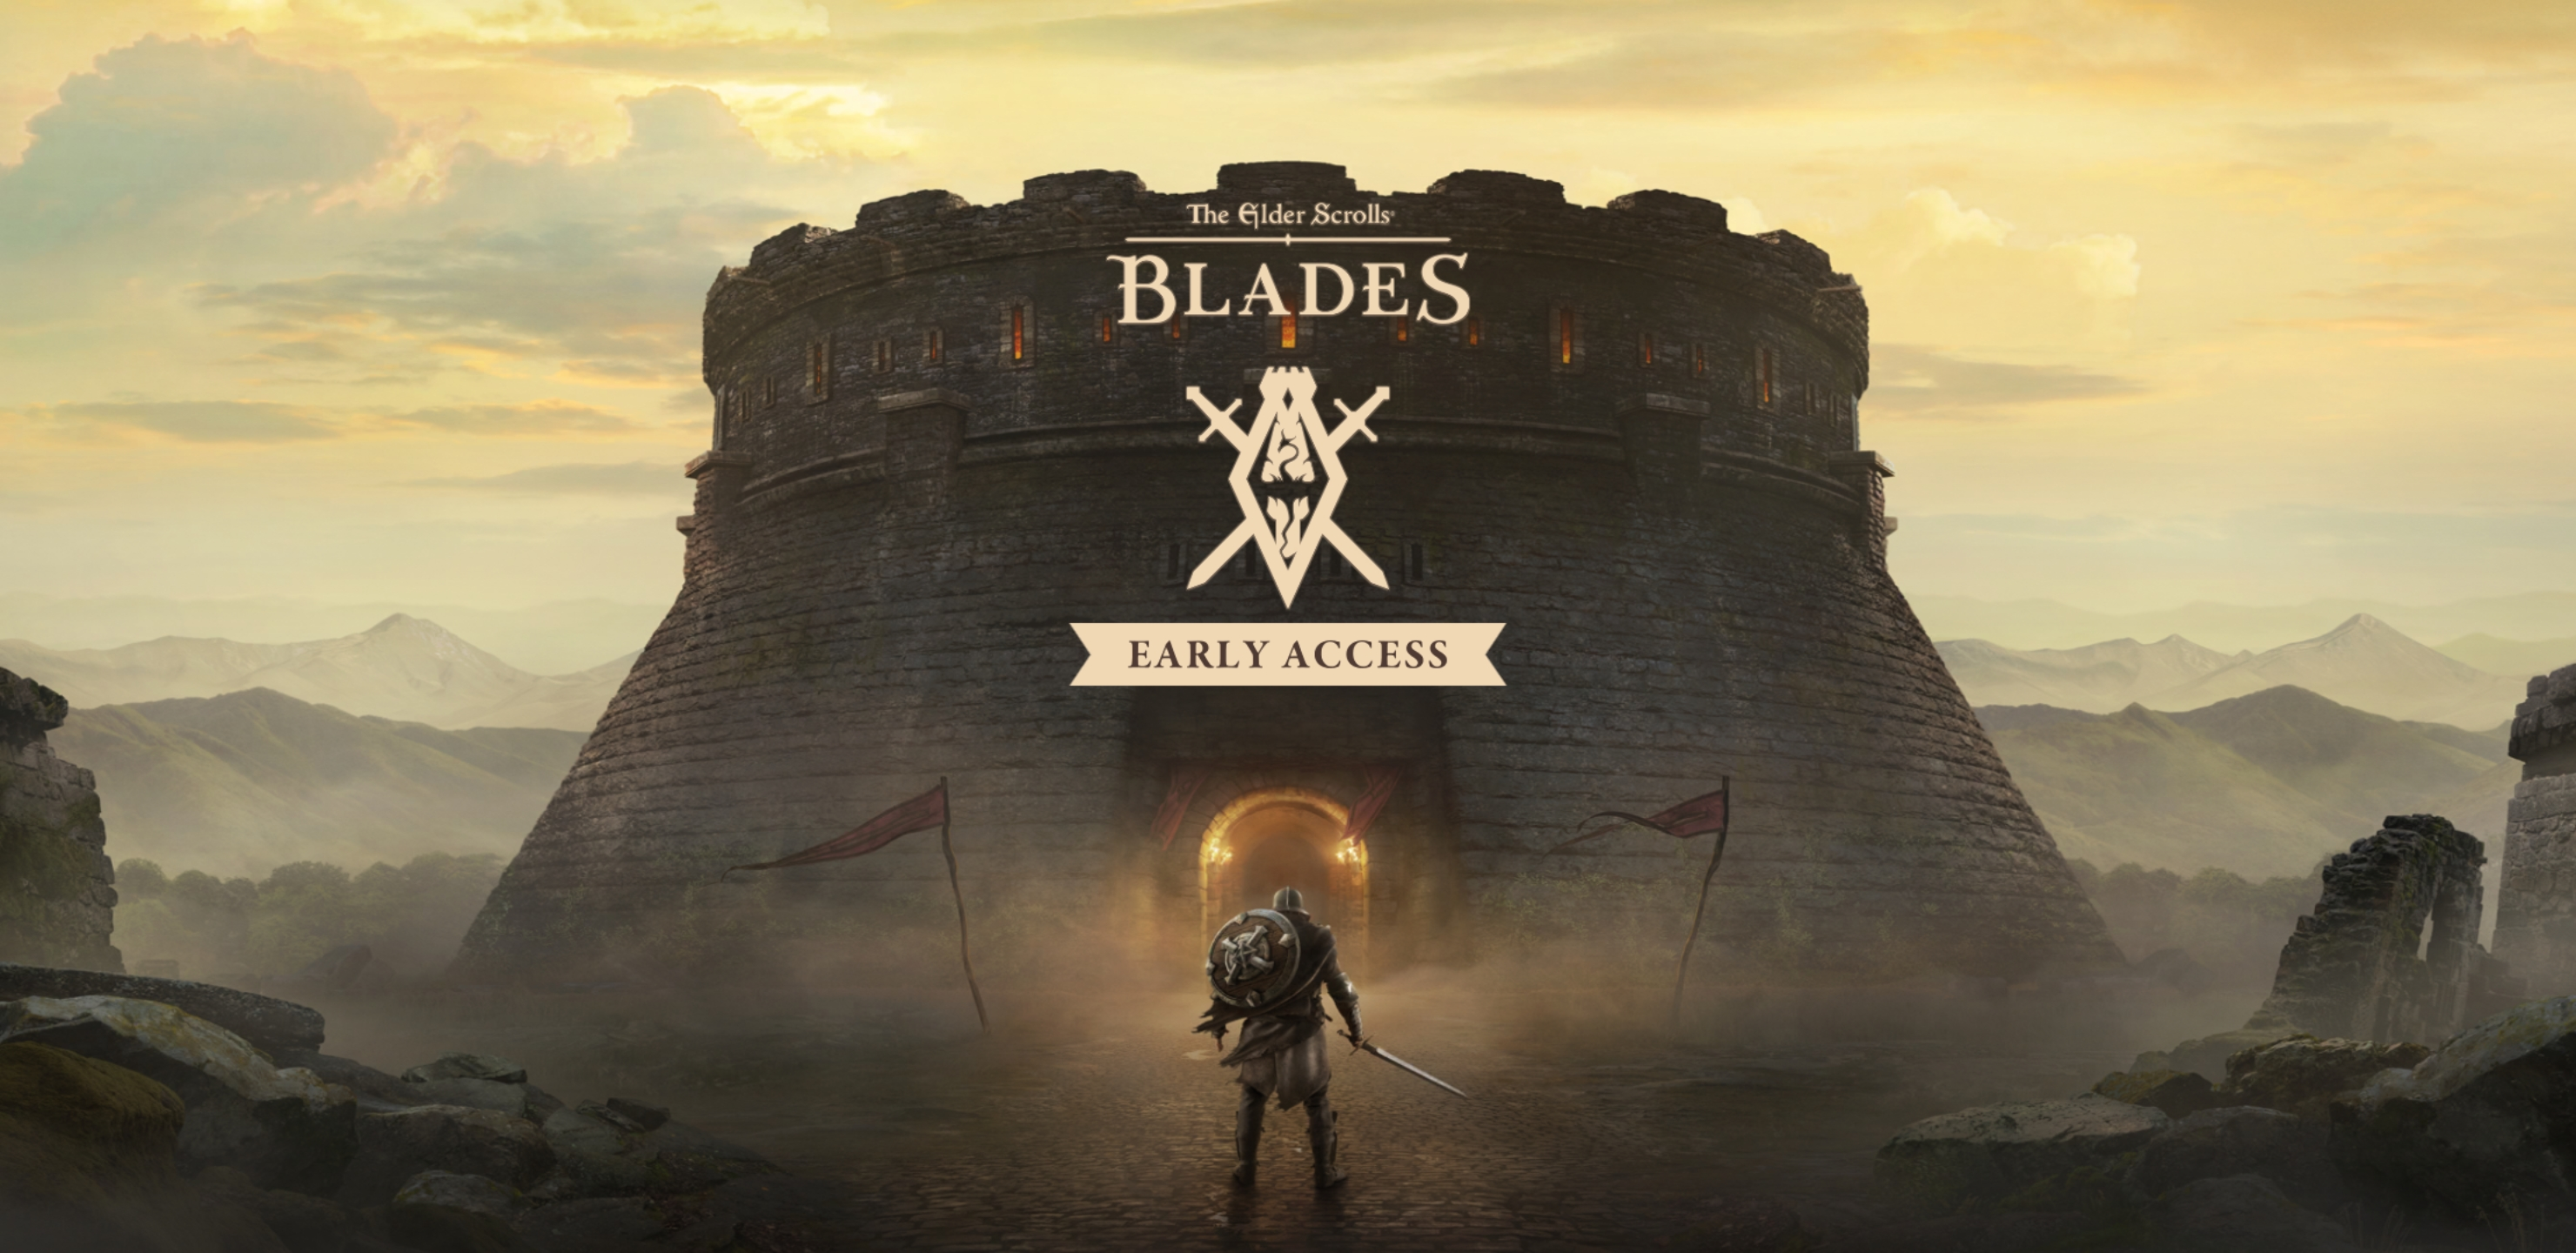 The Elder Scrolls: Blades hands on: A shallow skinner box that you